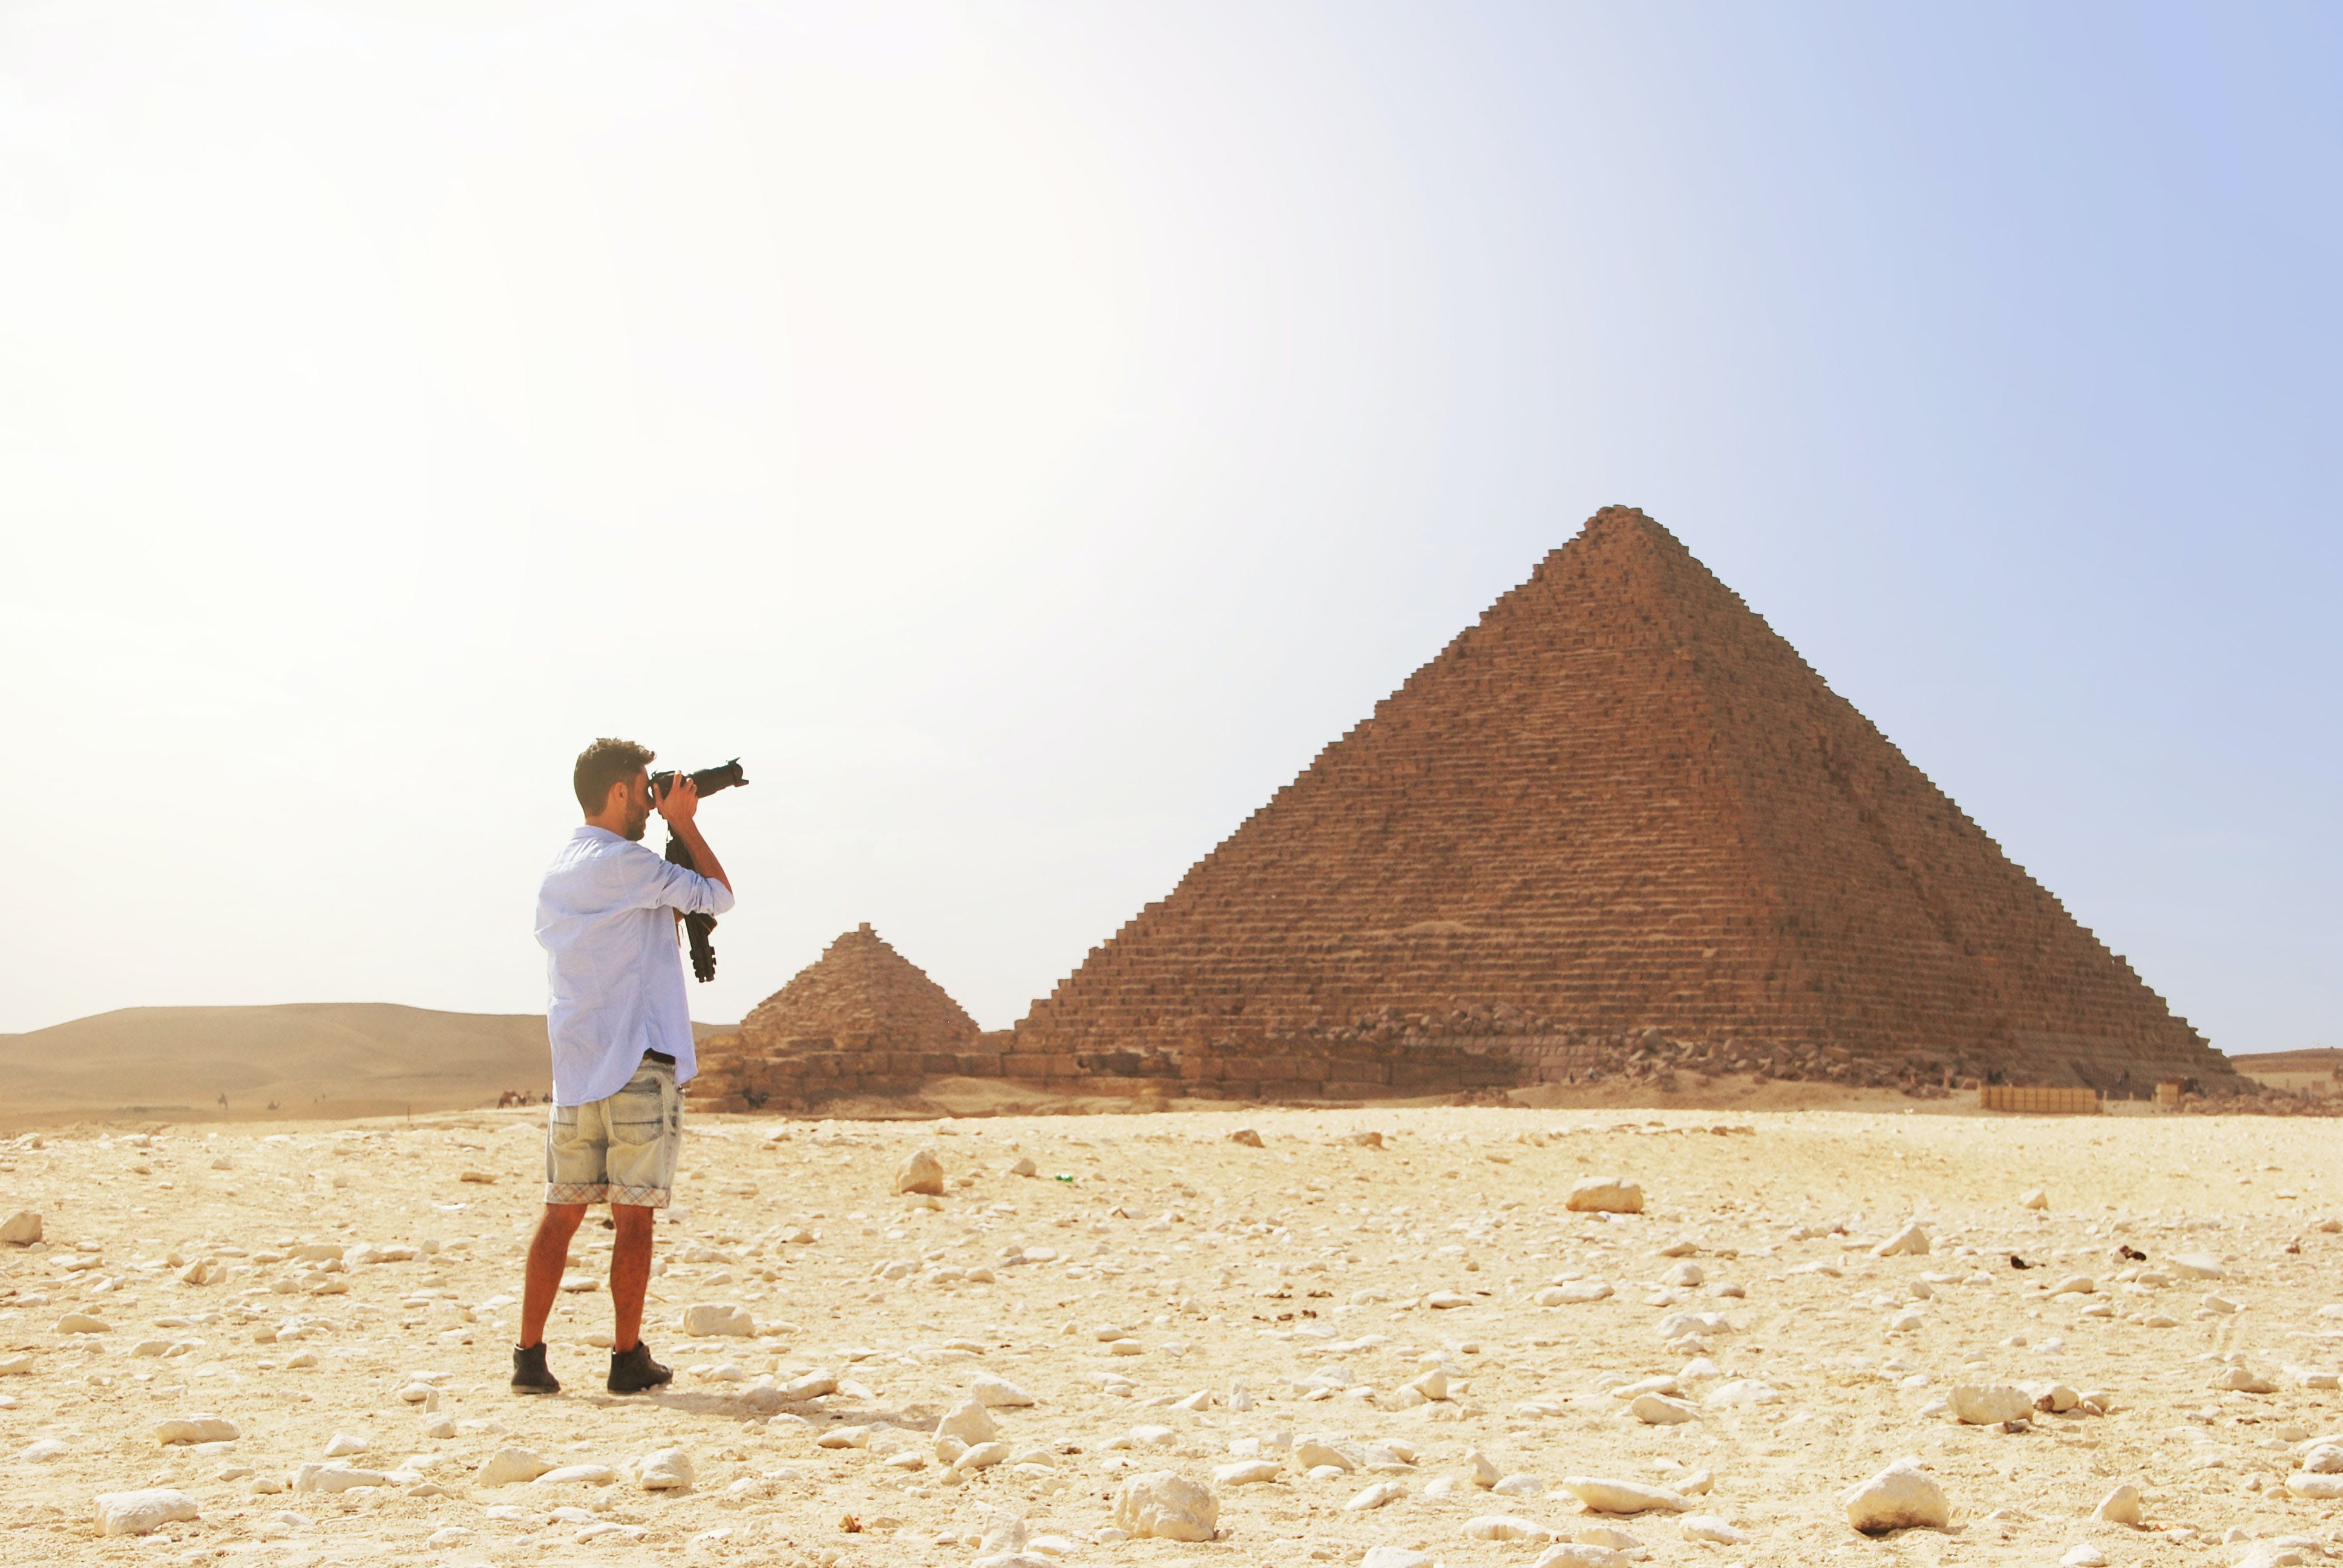 Man Taking Photo of the Great Pyramid